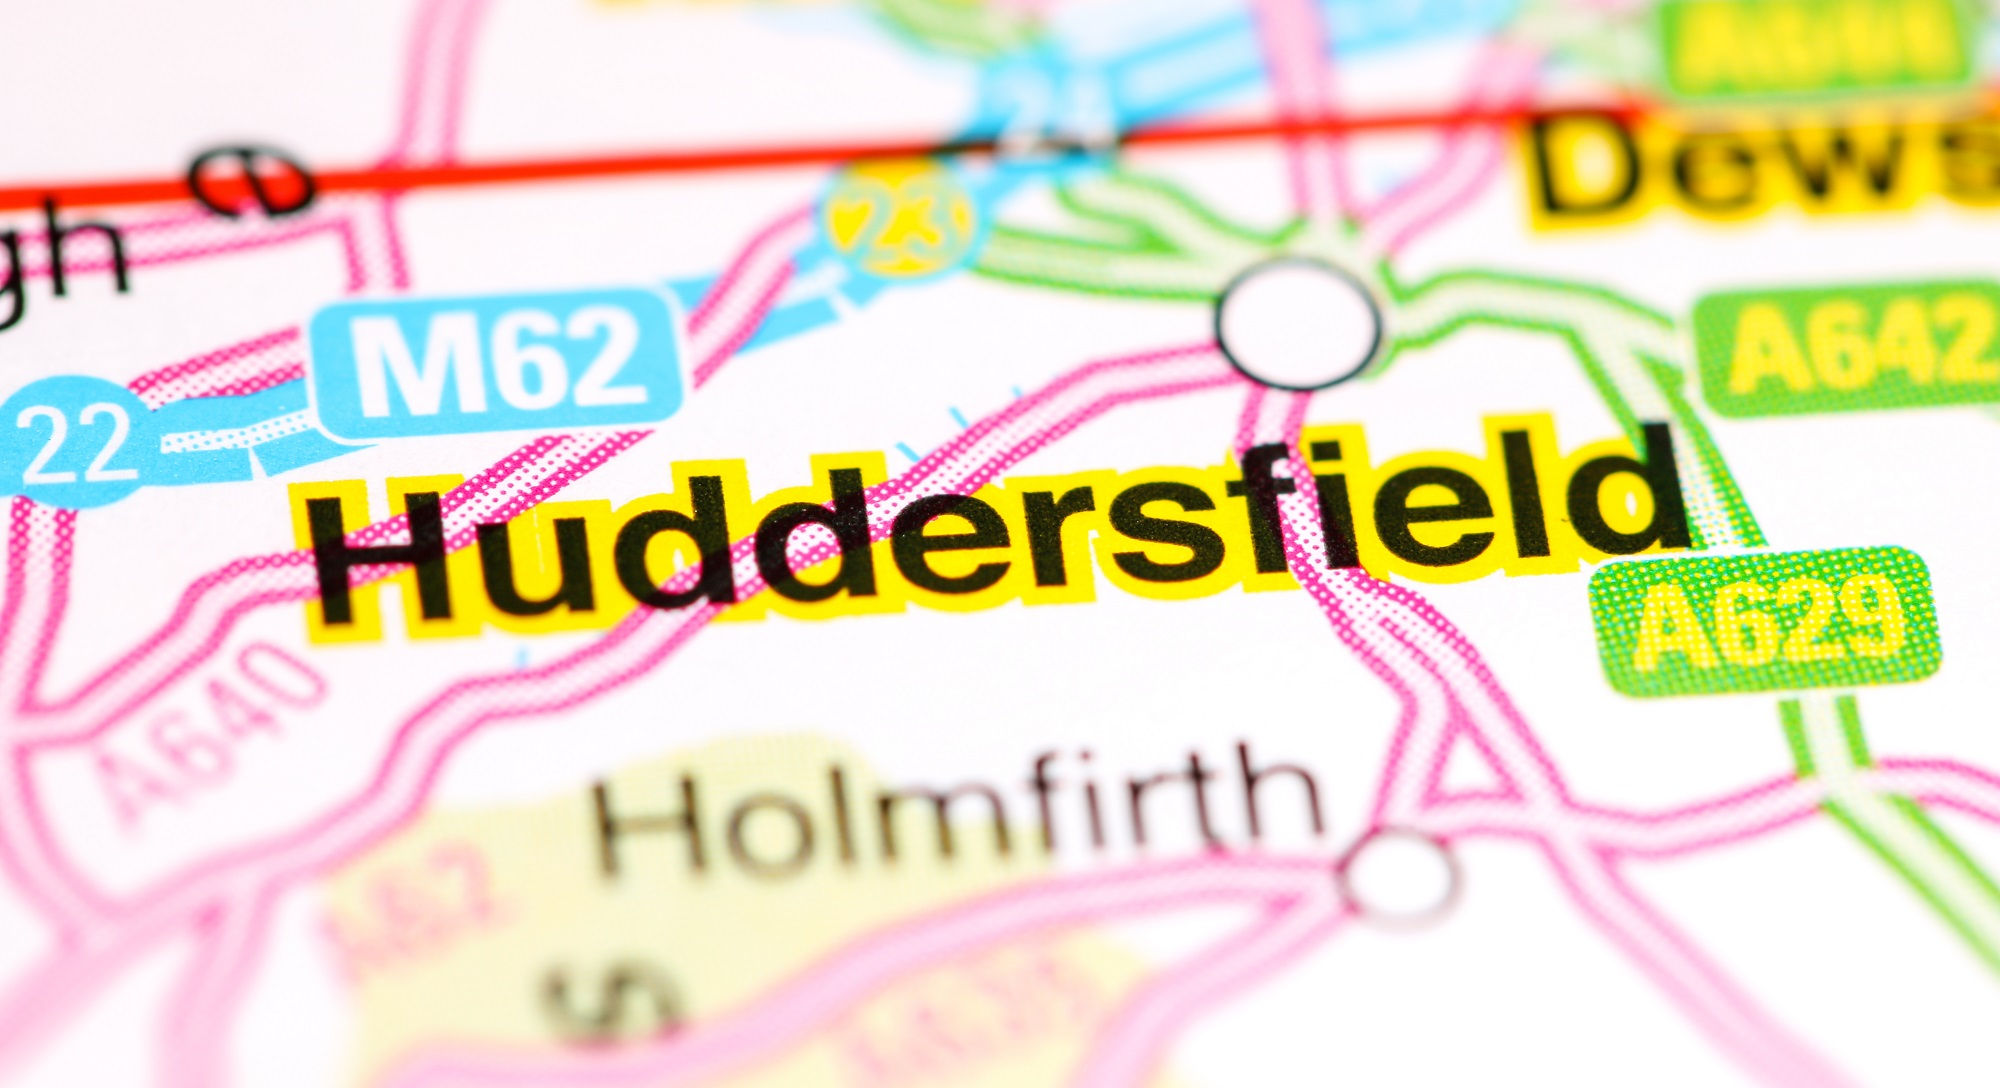 Everything you need to know about living in Huddersfield